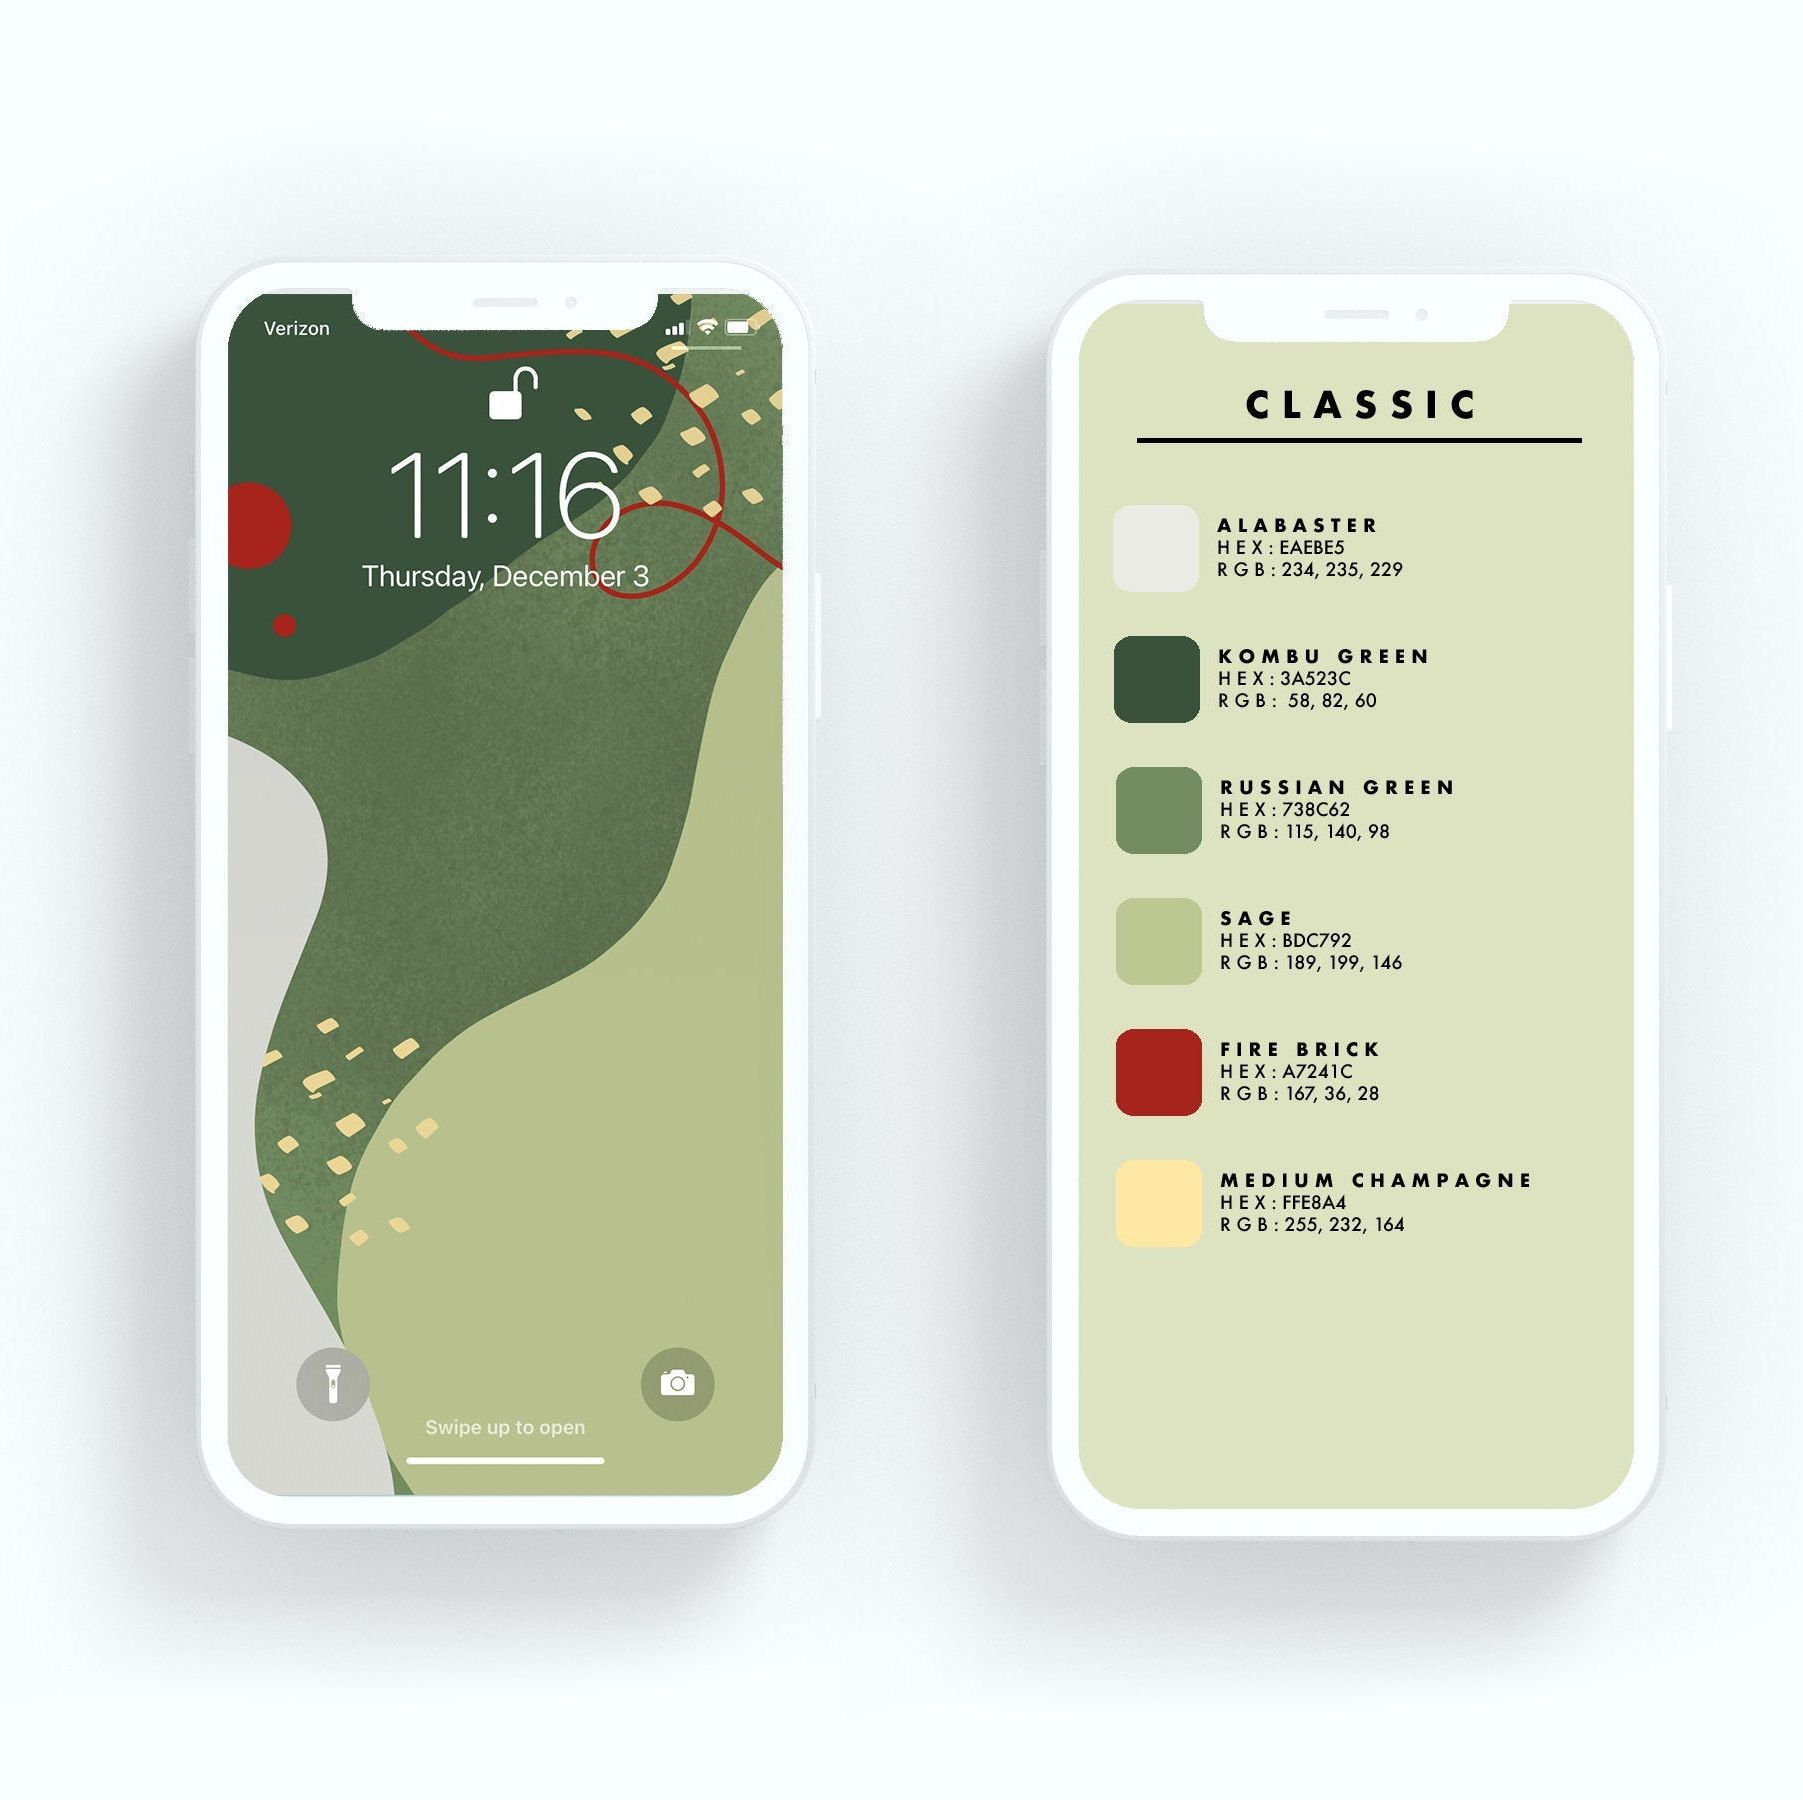 IOS 21 Themes Aesthetic Christmas iPhone Wallpaper   Etsy in 21 ...